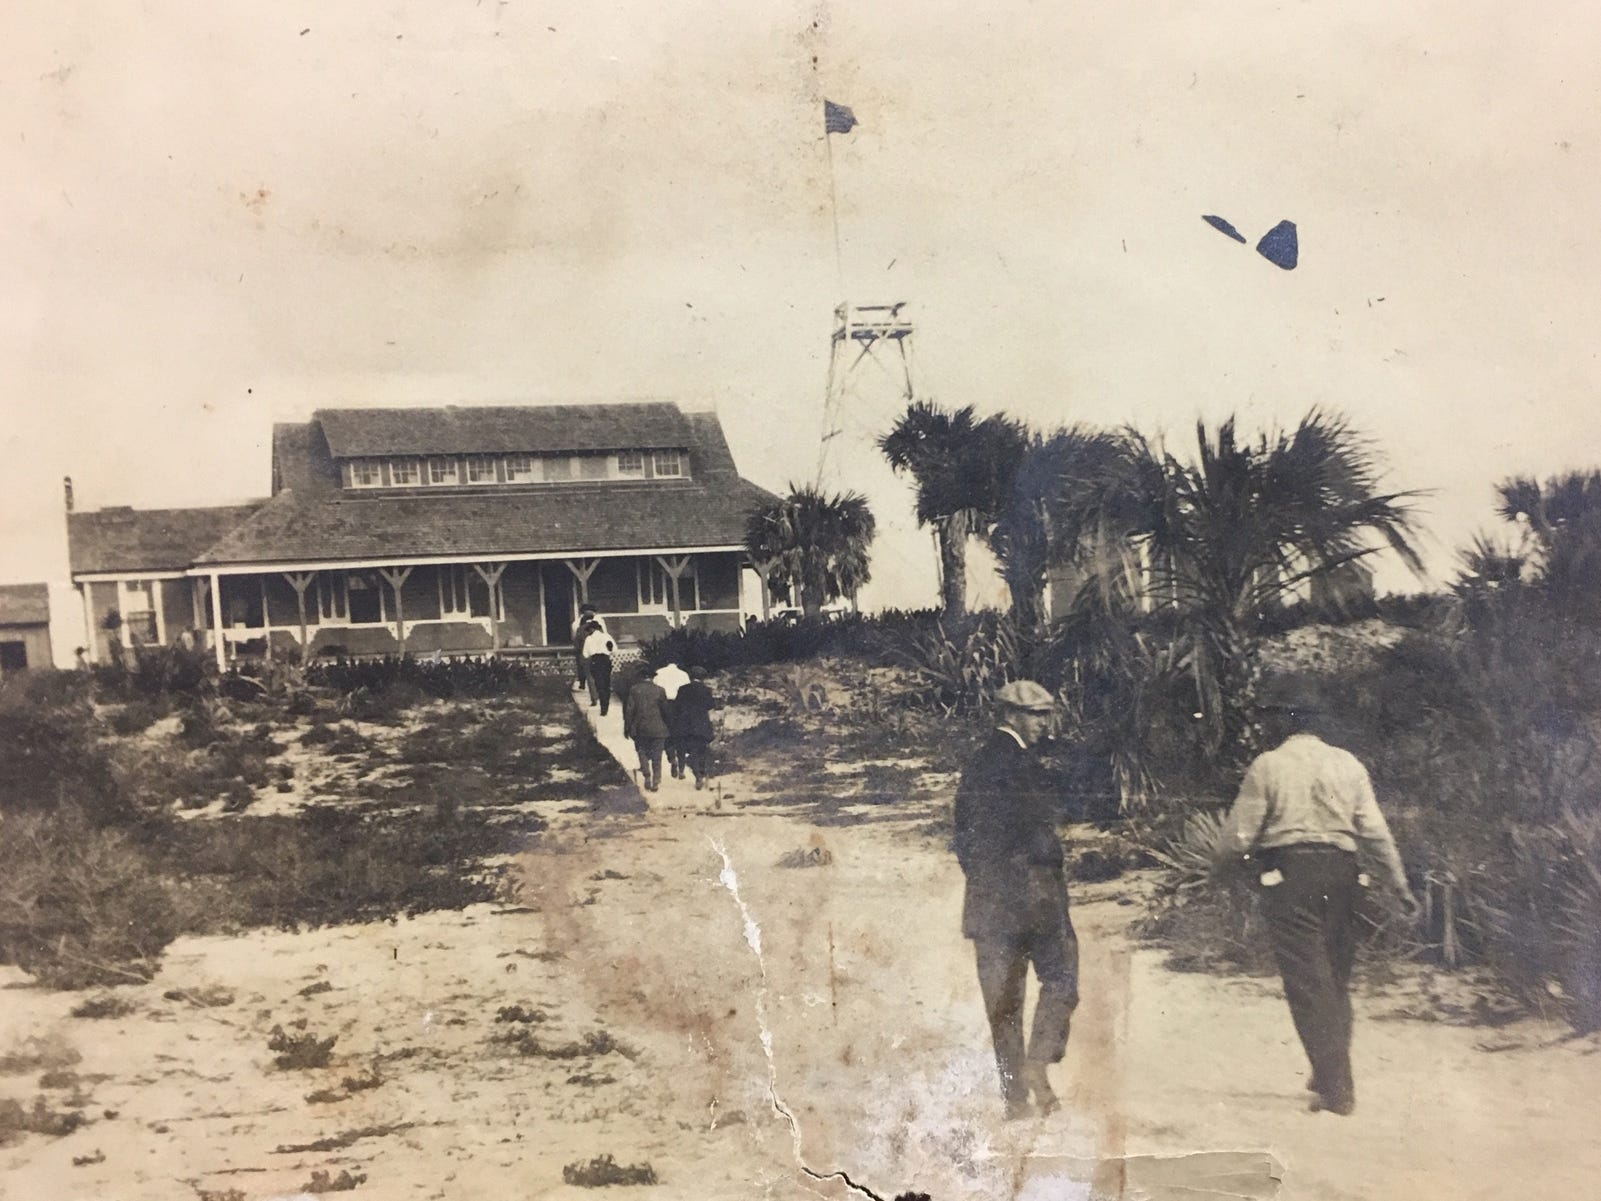 Bethel Creek House of Refuge in Vero Beach, pre-1920.